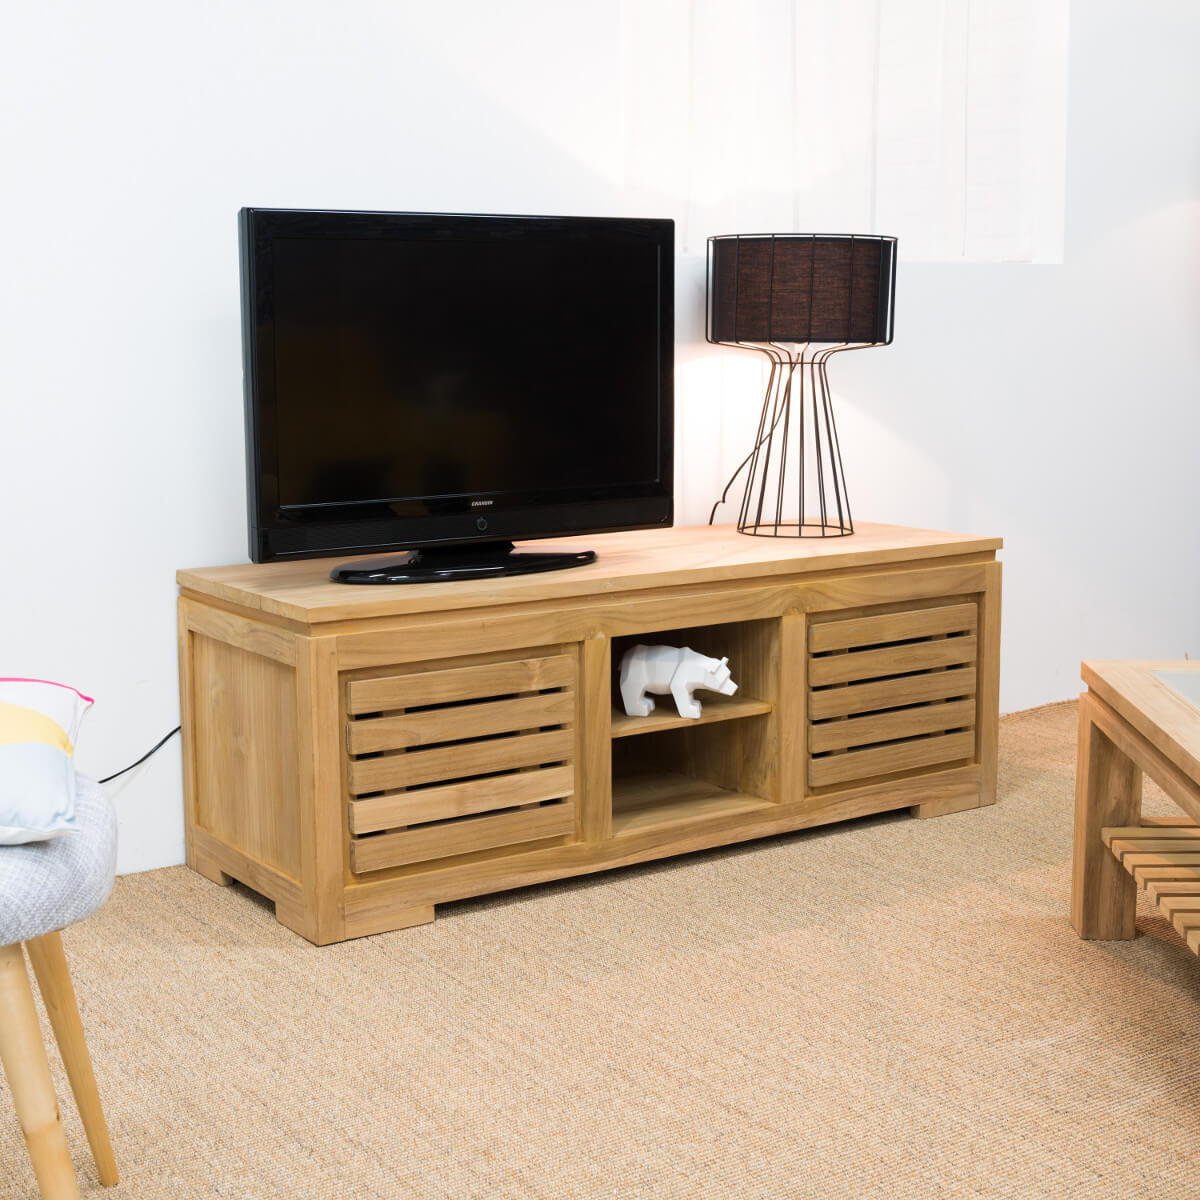 Meuble tv teck meuble tv bois naturel rectangle zen for Meuble tv bas en bois